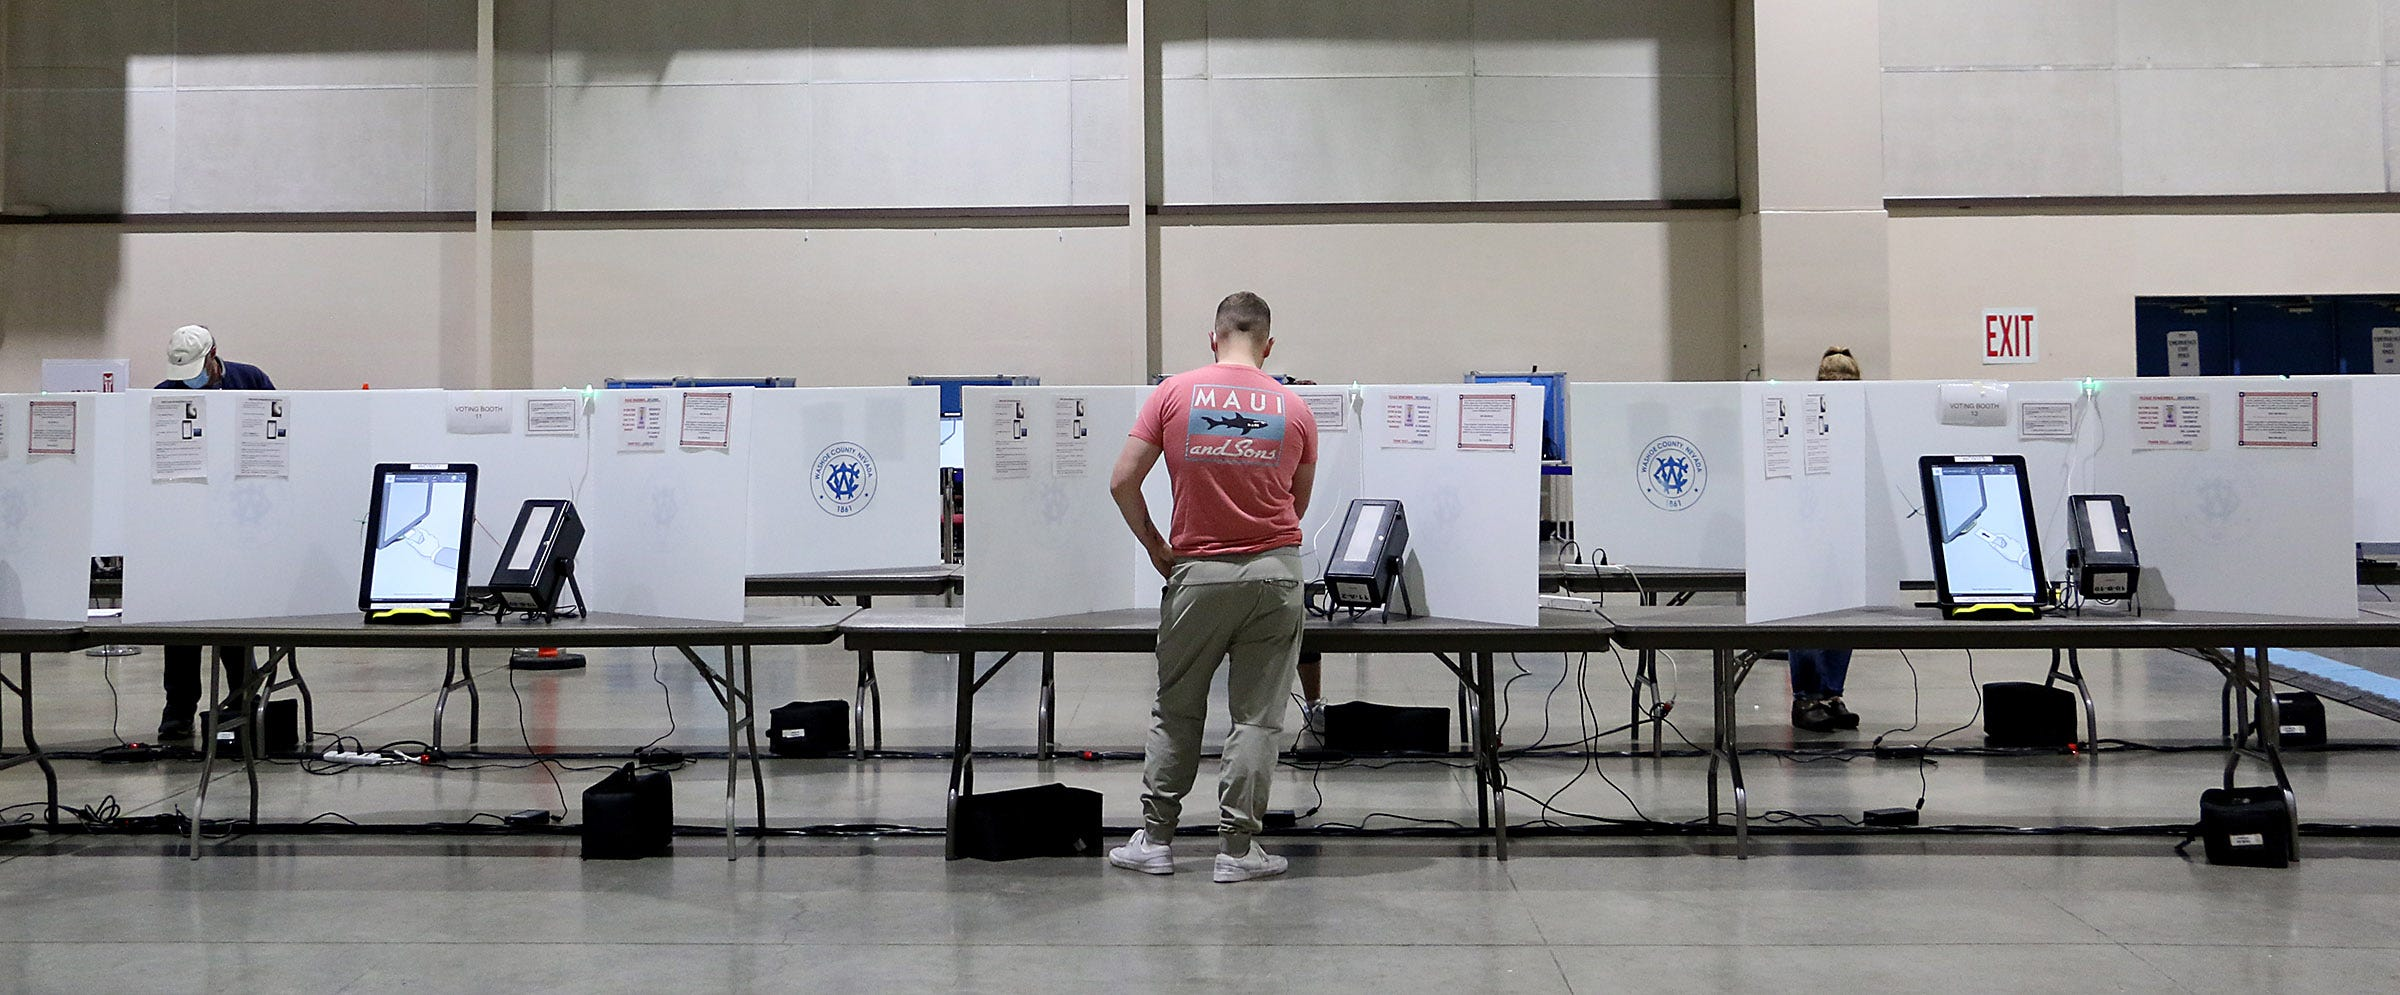 People participate in early voting at the Reno-Sparks Convention Center on Oct. 17, 2020.